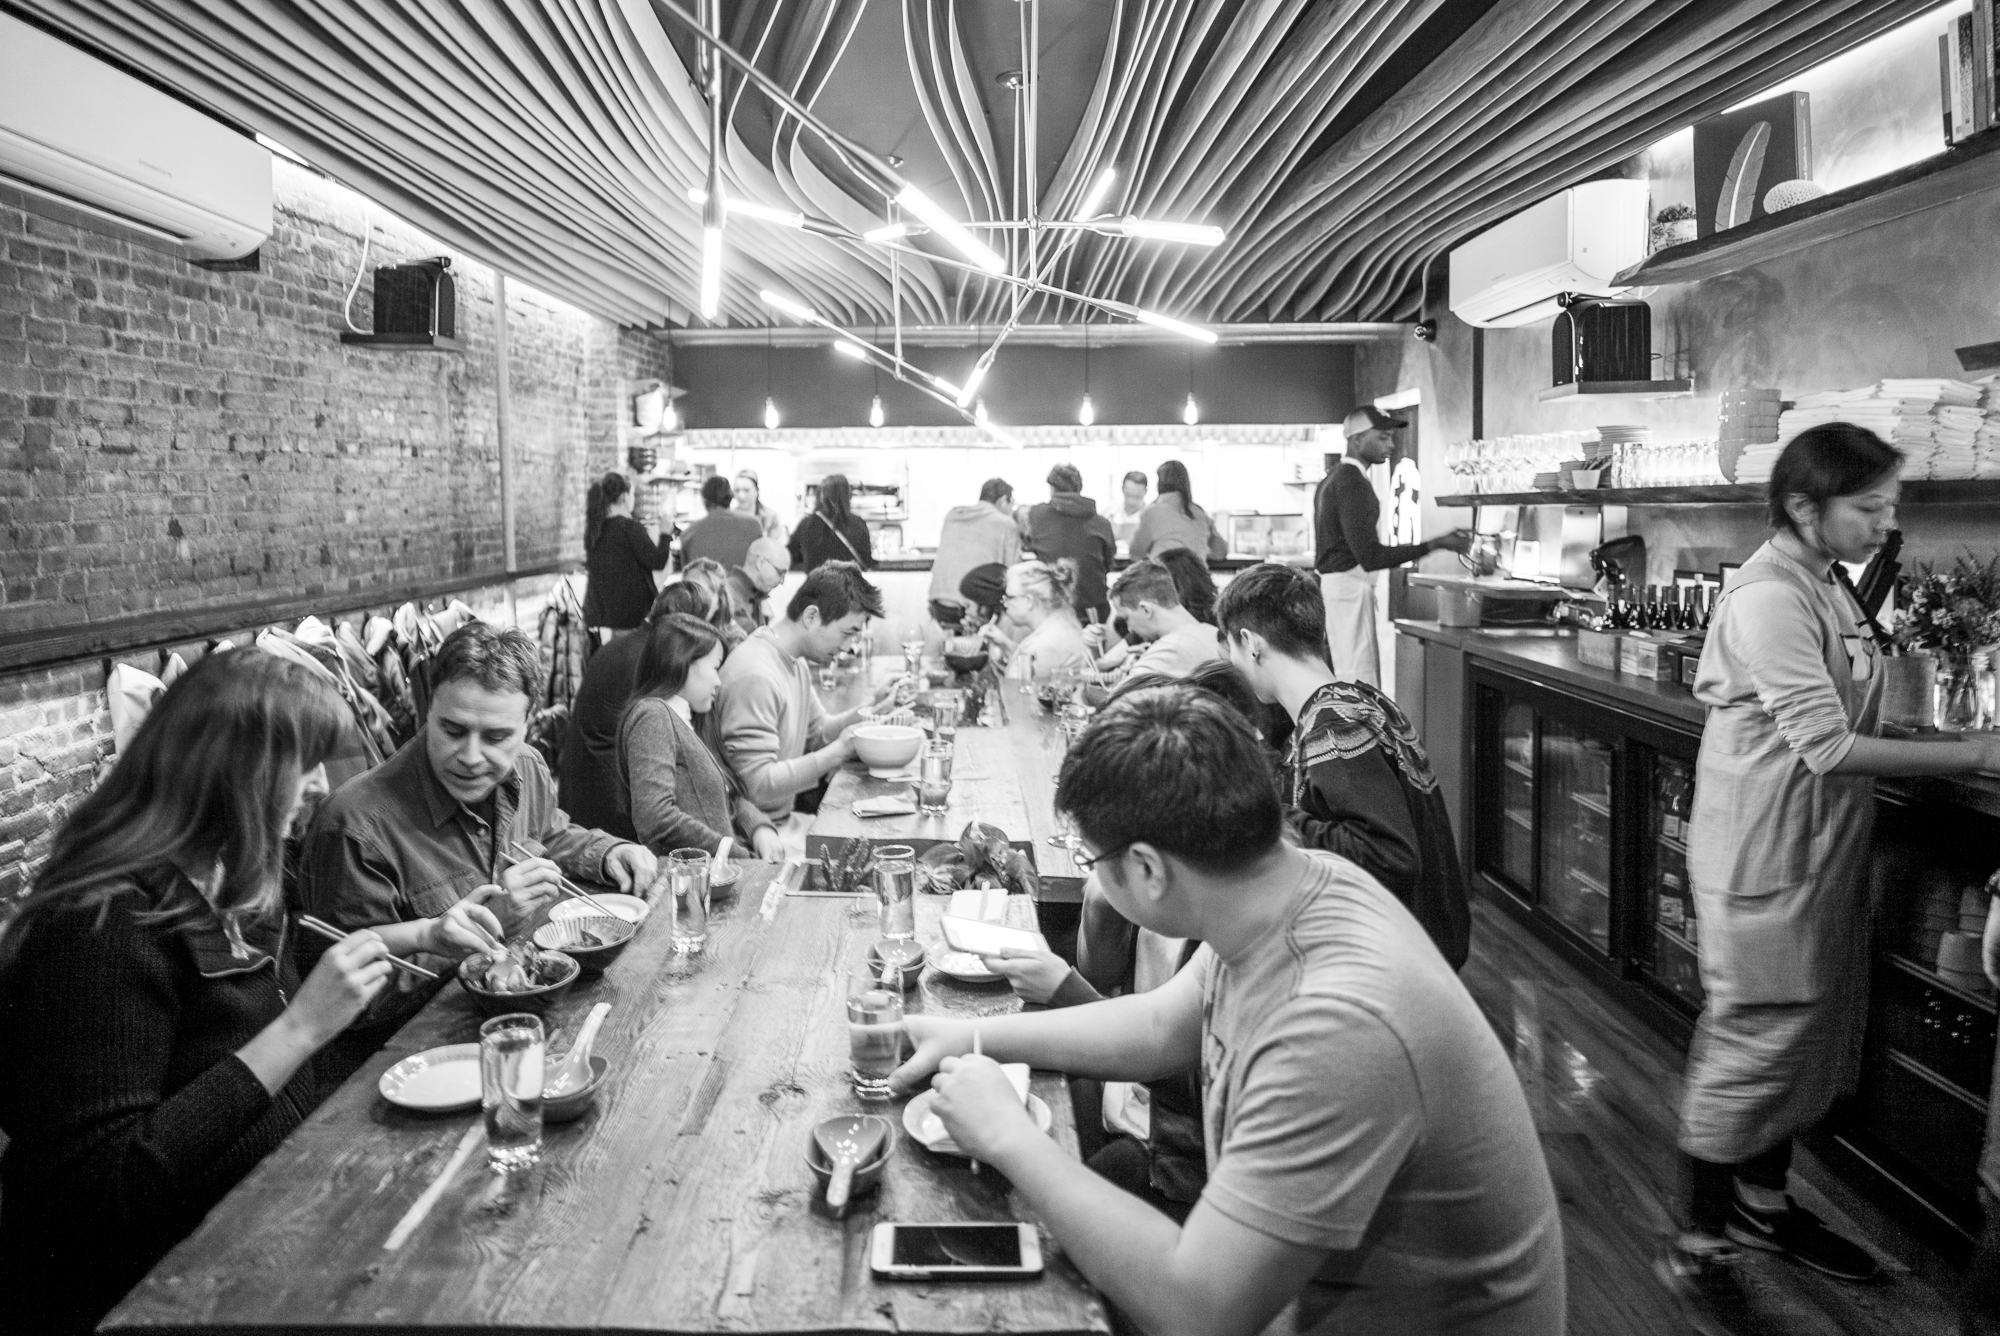 Diners slouch over bowls of steaming ramen at a lengthy wooden table in a restaurant